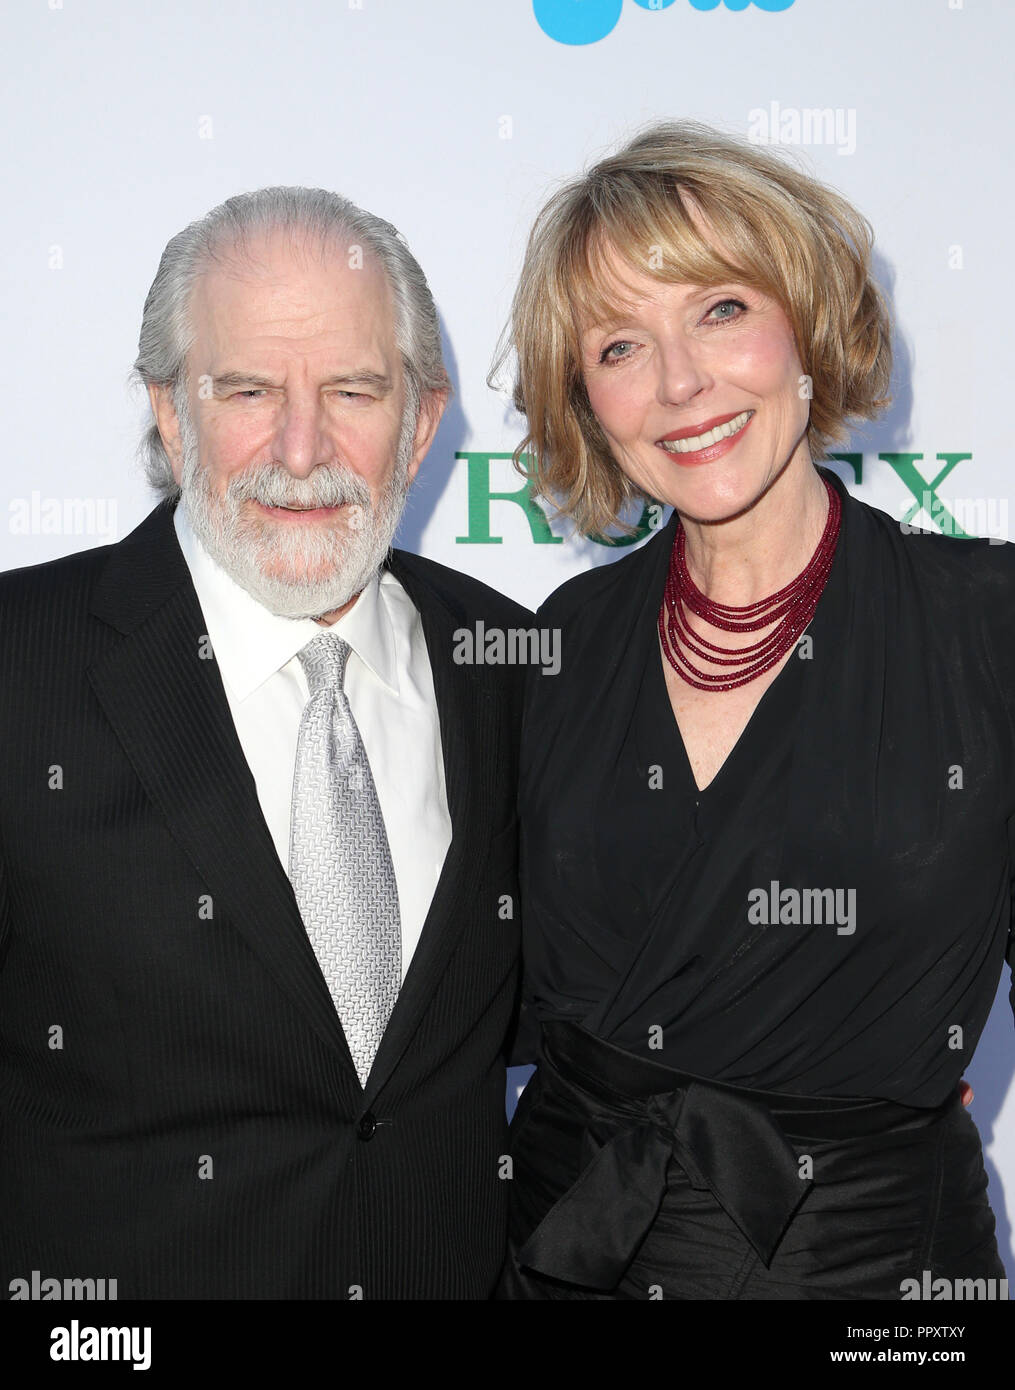 Los Angeles, Ca, USA. 27th Sep, 2018. Steve Jaffe, Susan Blakely, at Los Angeles Philharmonic Opening Night at The Walt Disney Concert Hall in Los Angeles California on September 27, 2018. Credit: Faye Sadou/Media Punch/Alamy Live News - Stock Image